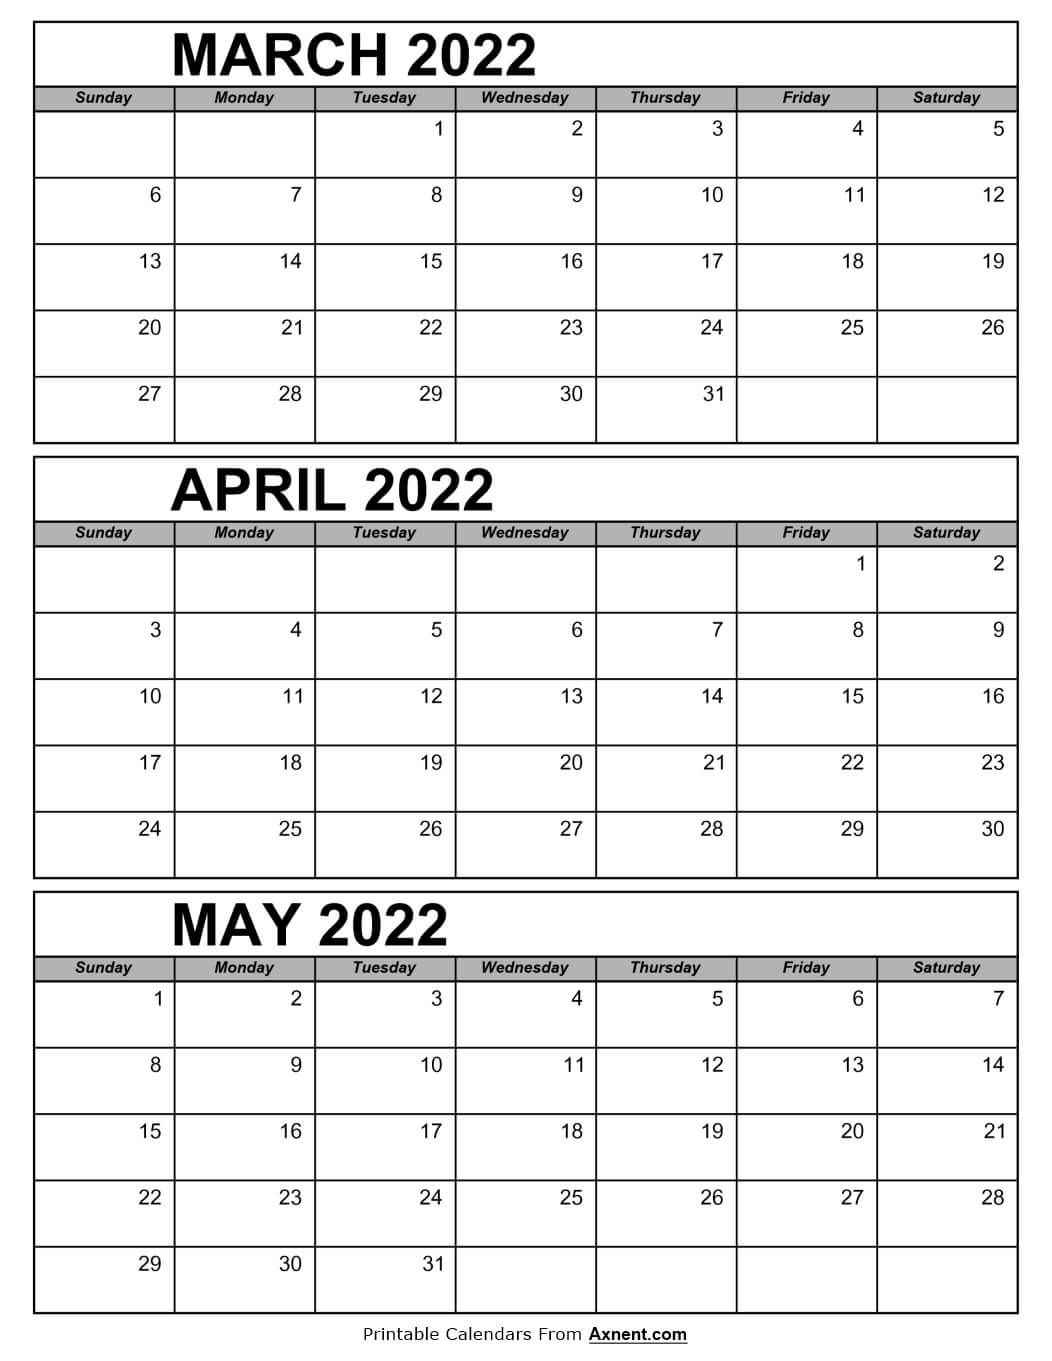 March April and May Calendar 2022